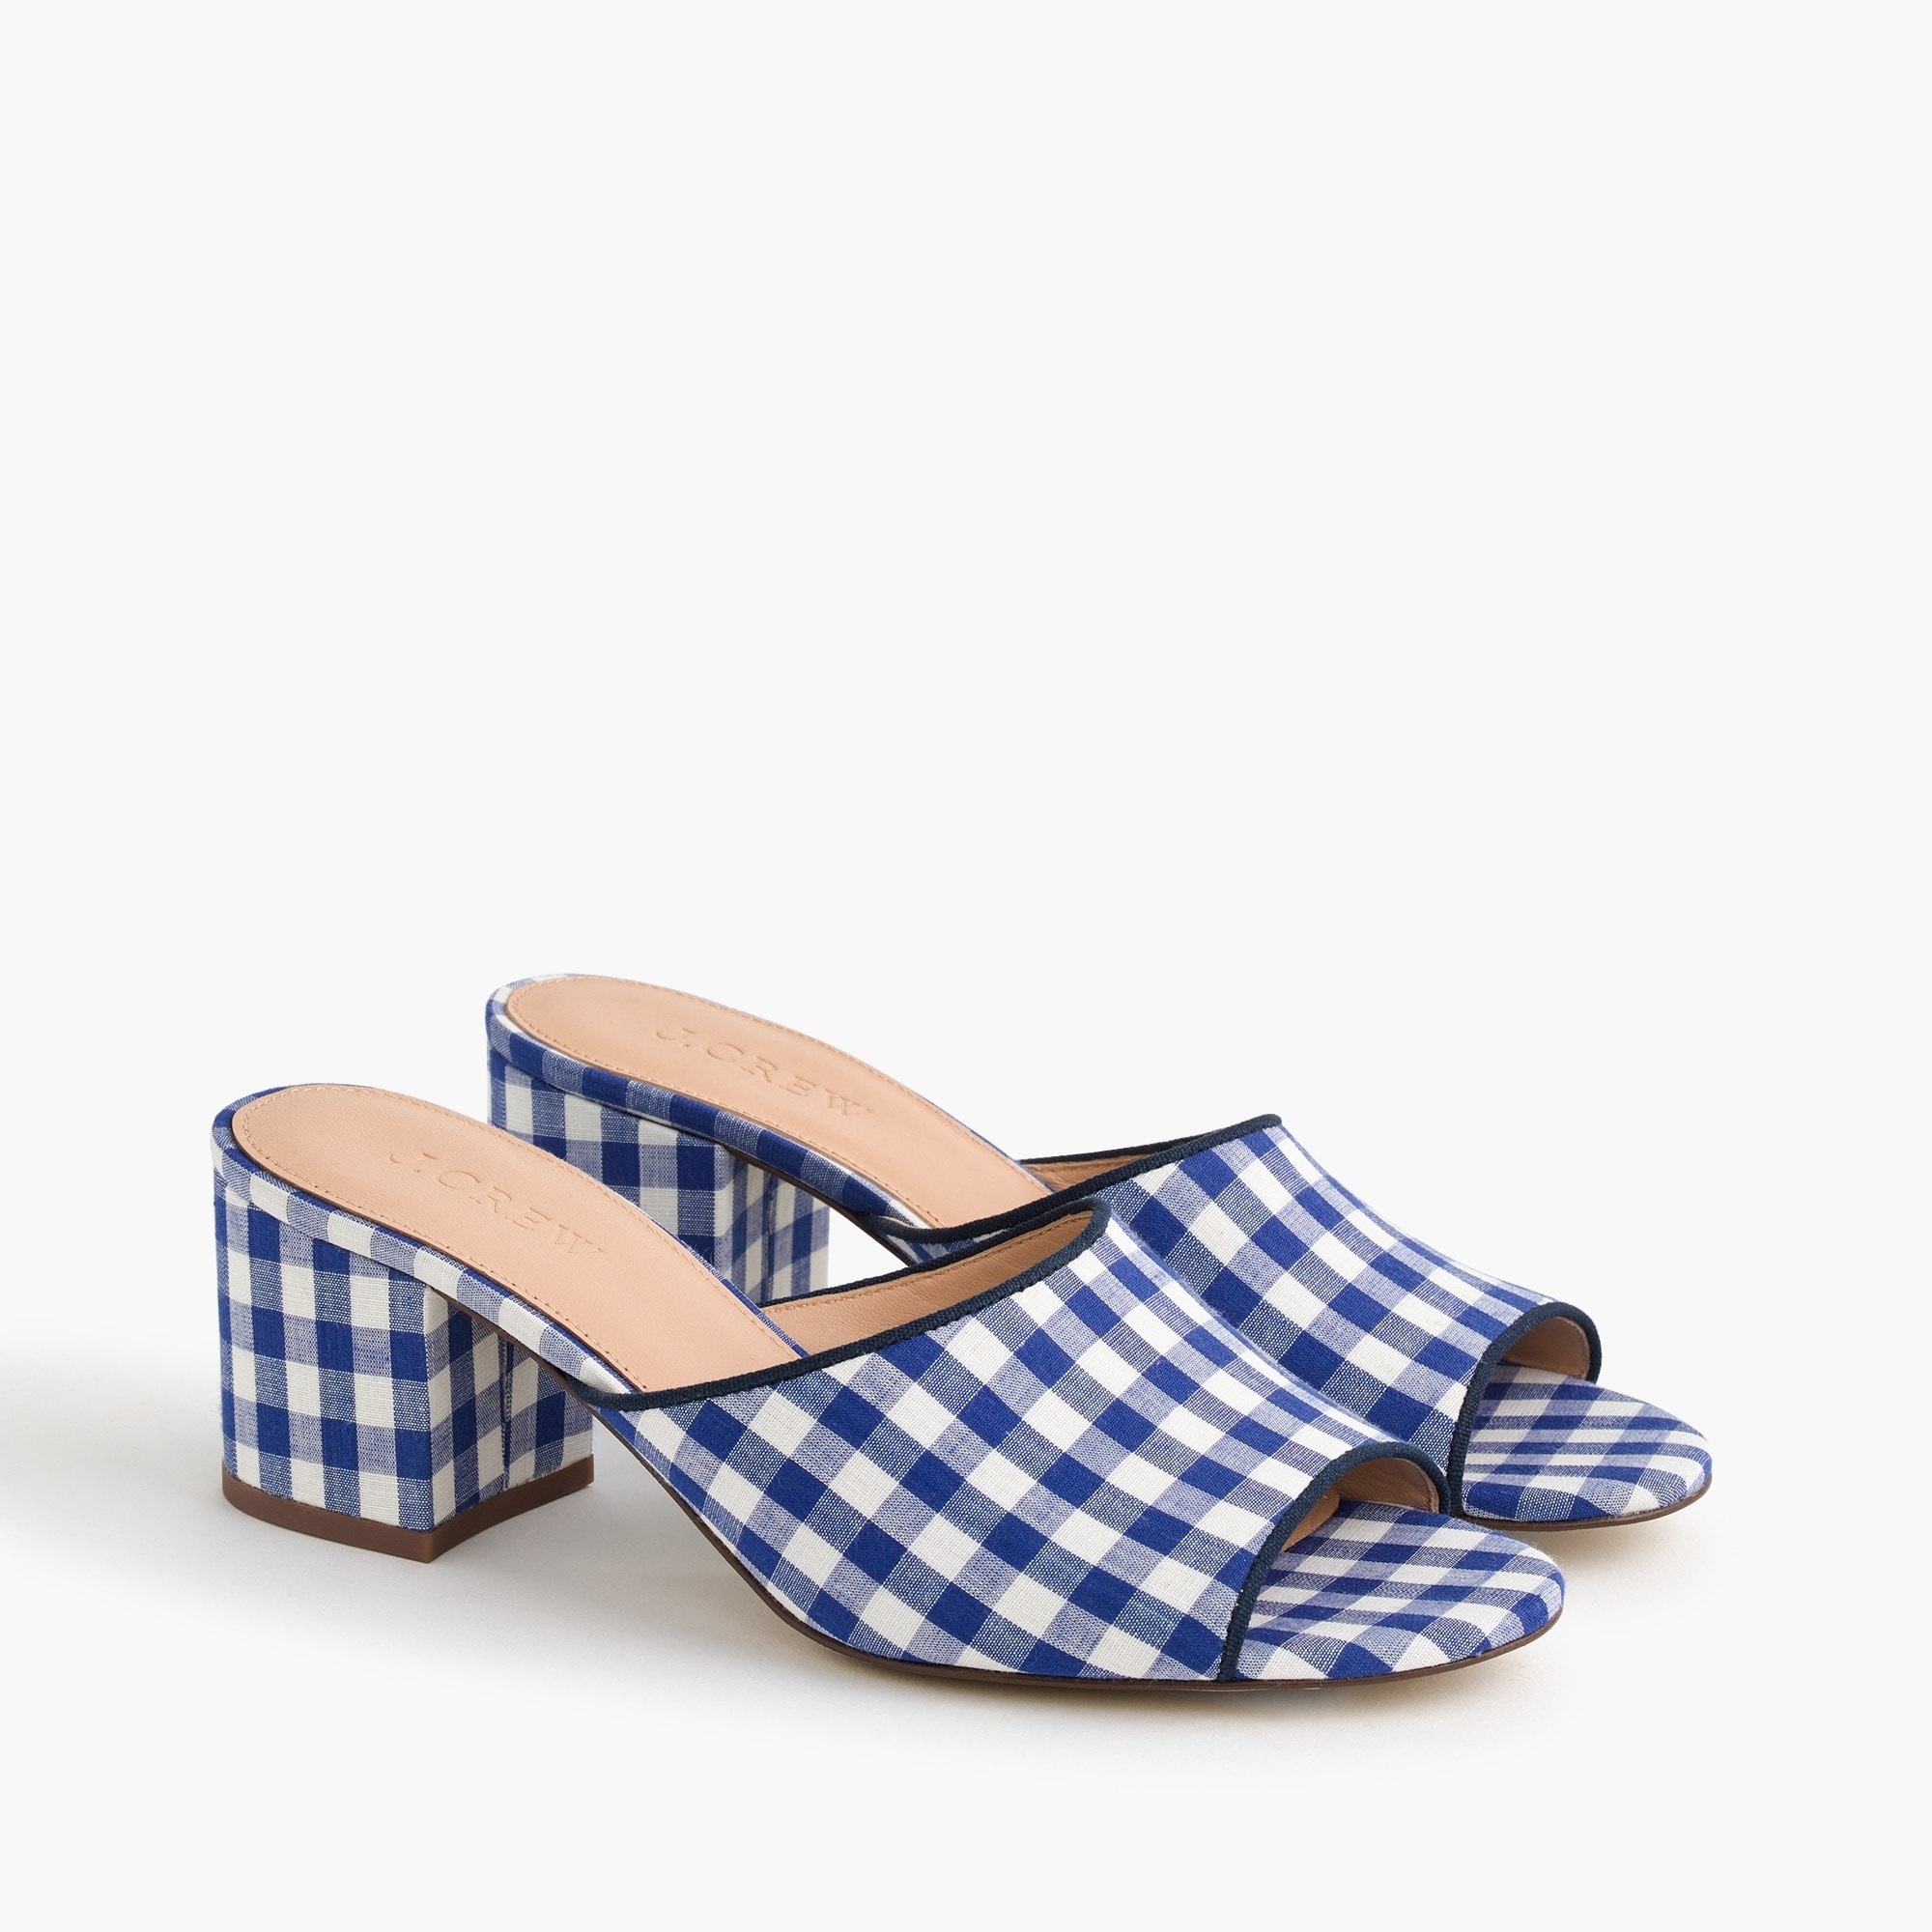 All-day mule (60mm) in gingham women shoes c